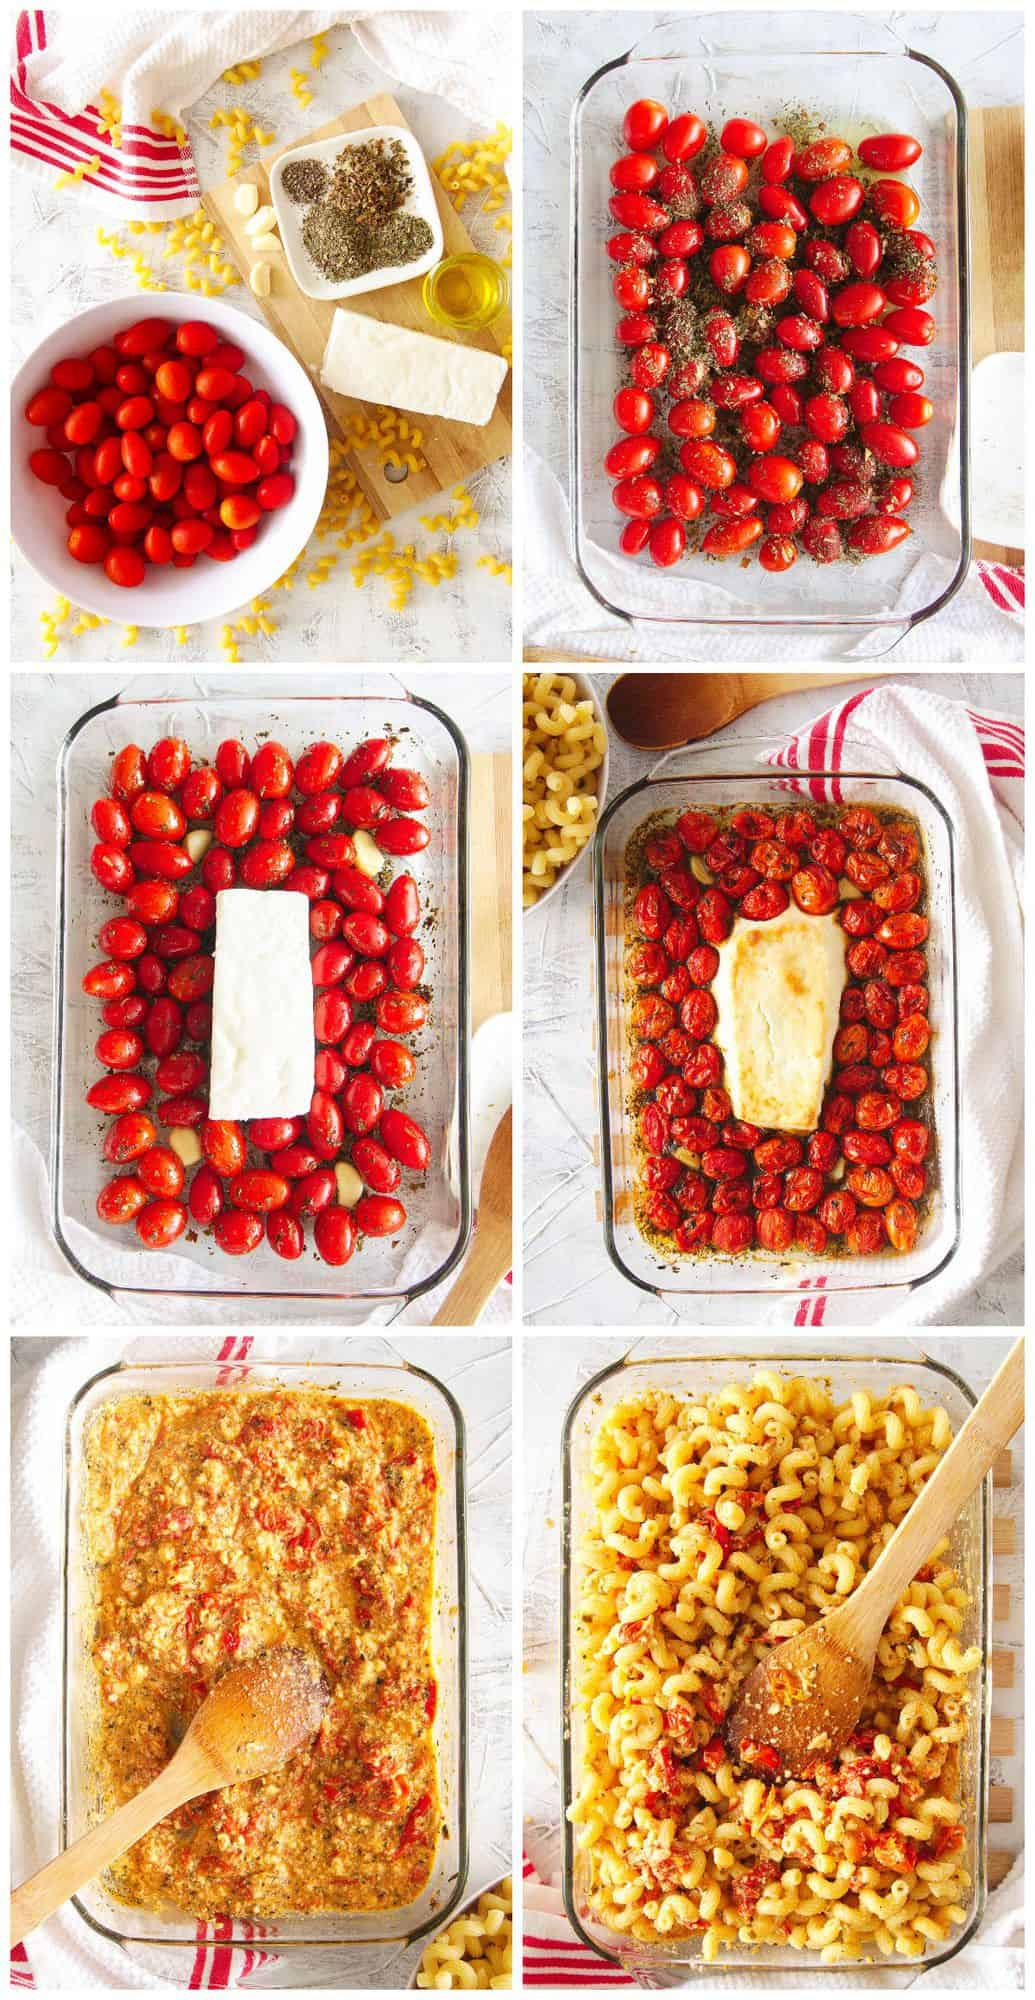 step by step photos for how to make baked feta pasta